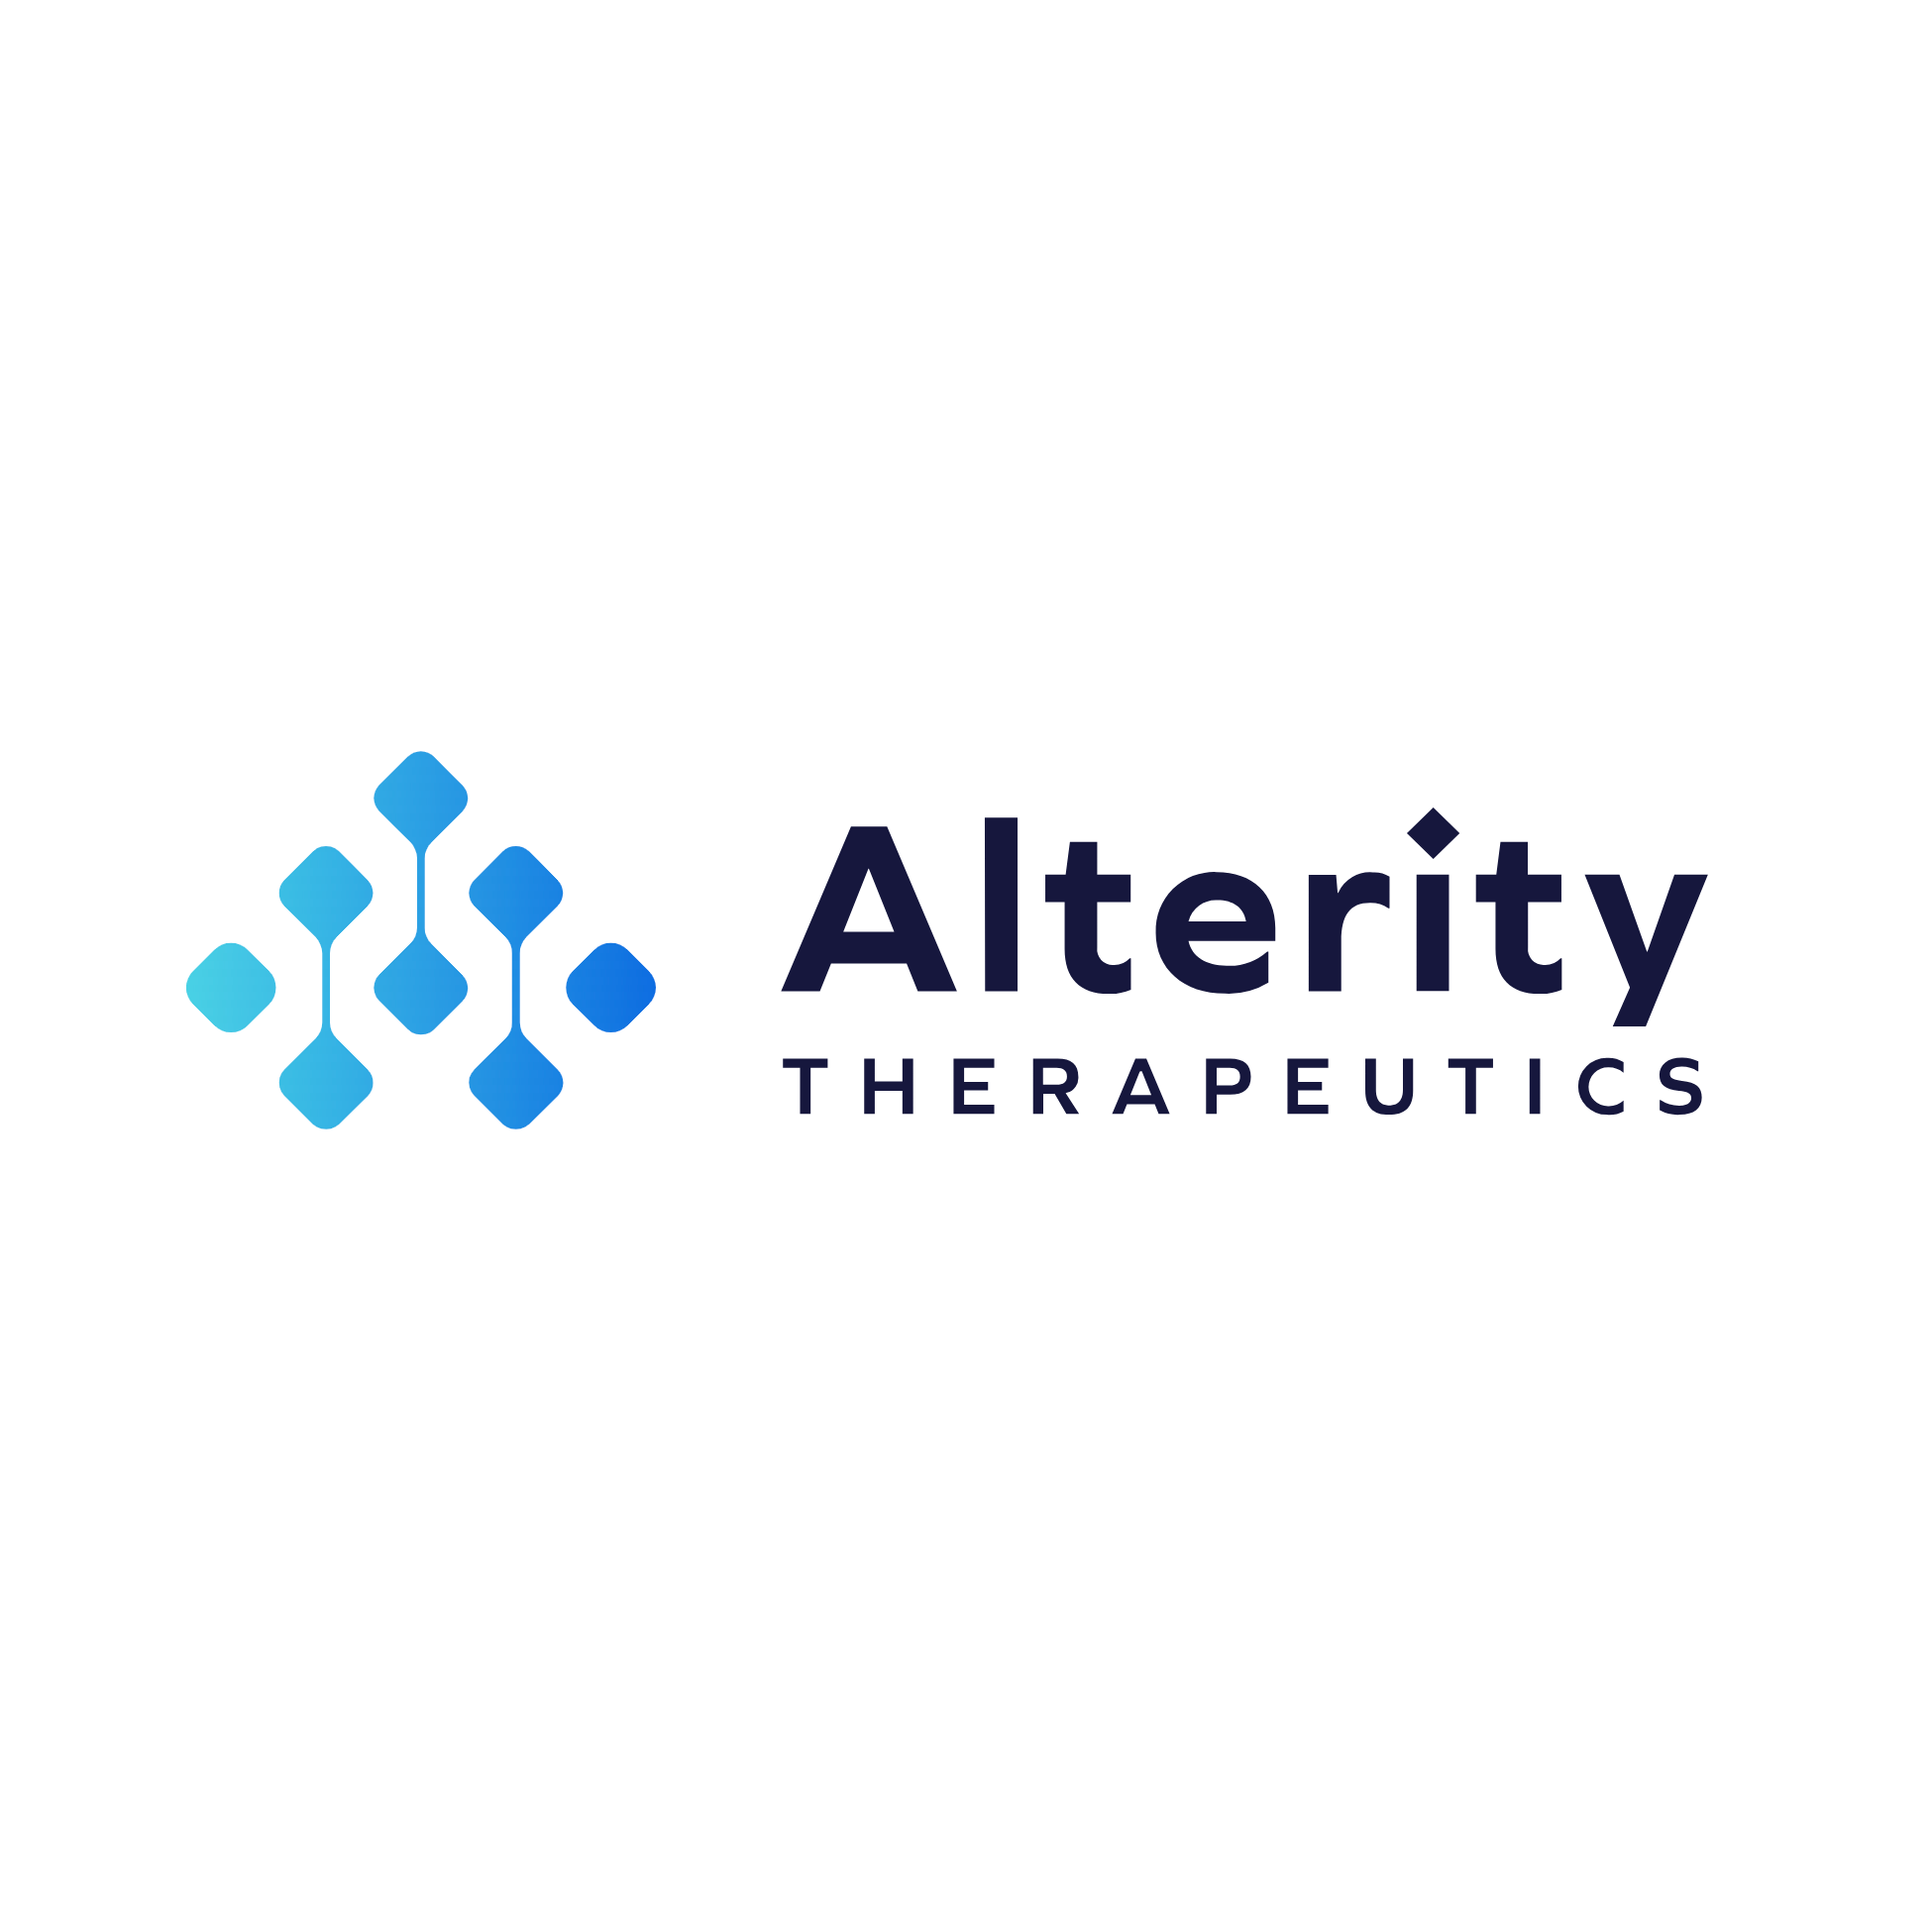 ALTERITY THERAPEUTICS LIMITED